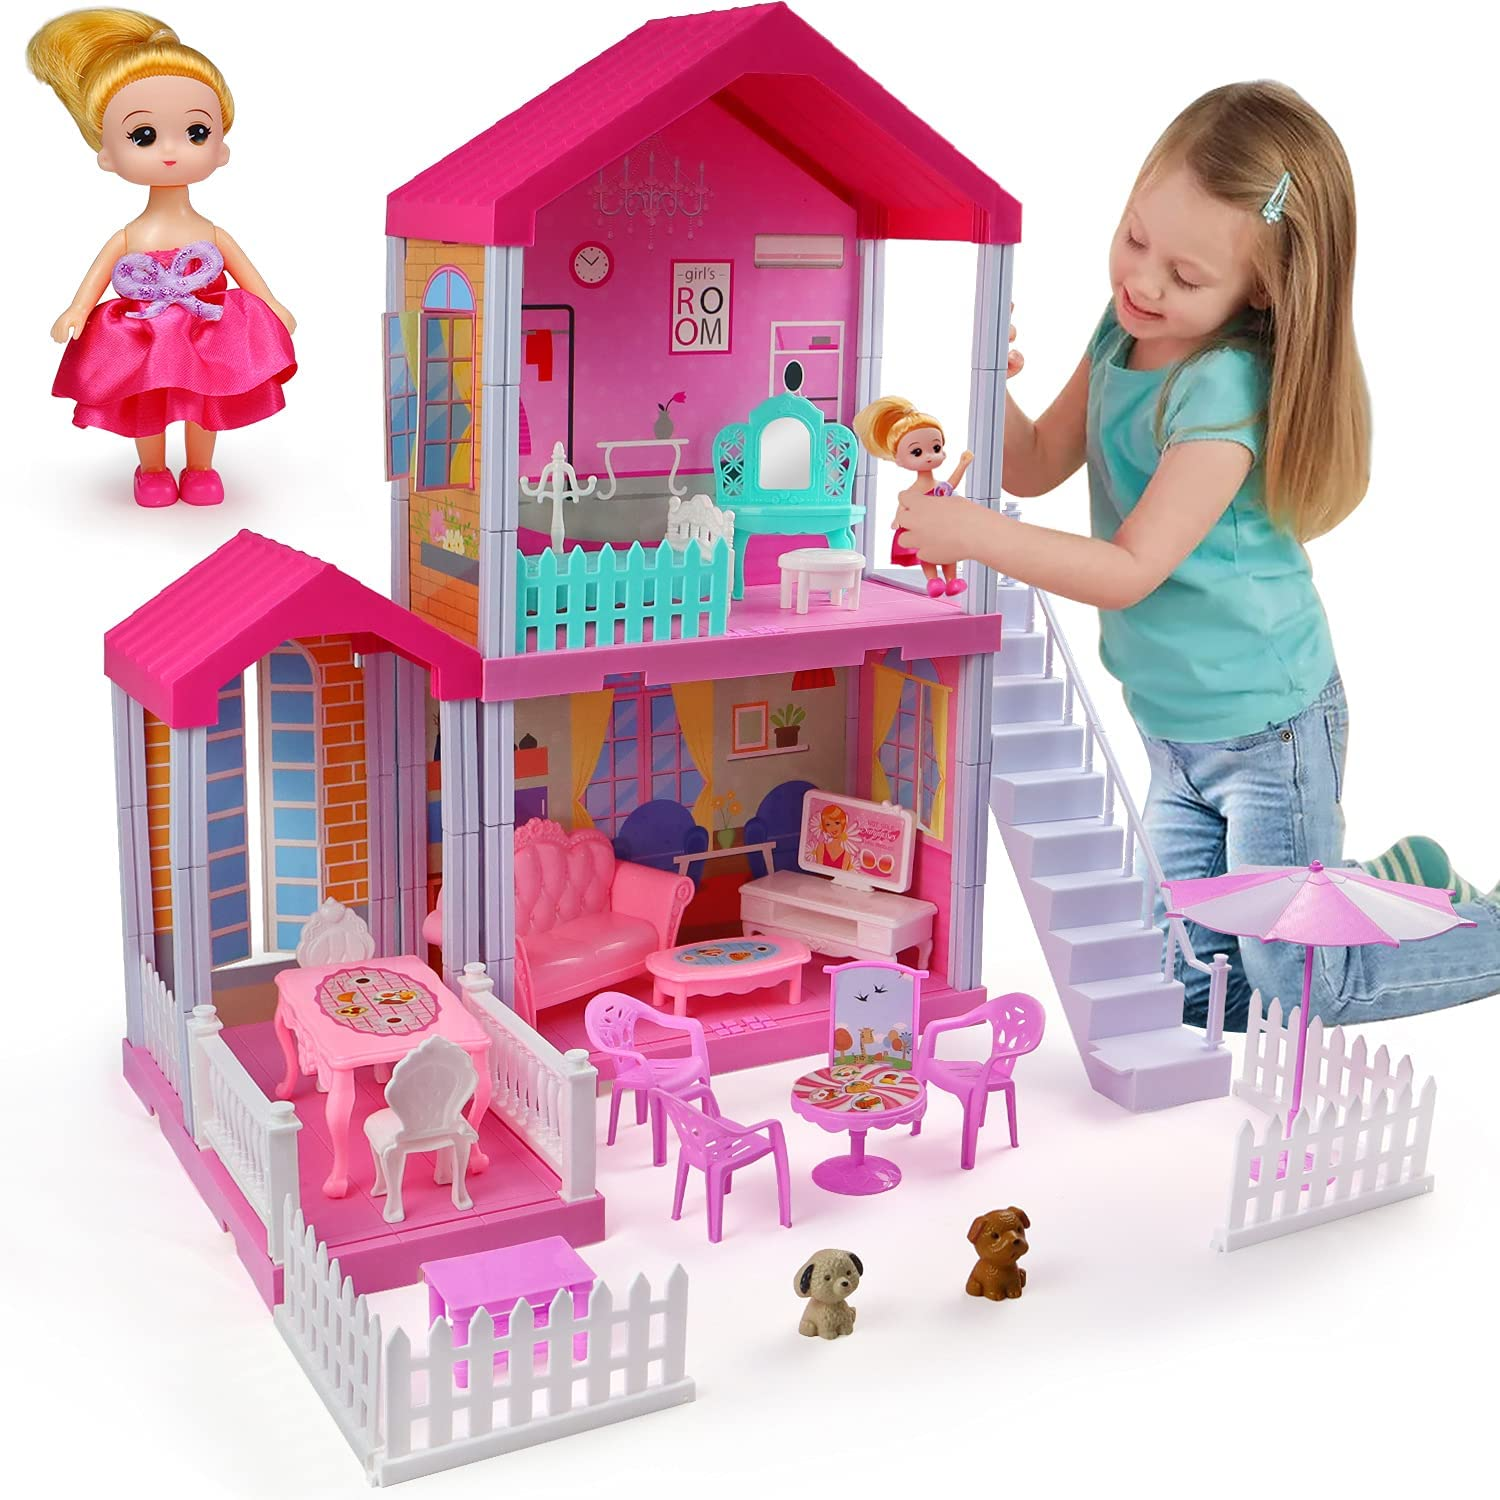 Review of aotipol Dollhouse Dreamhouse with Cloister, Stairs and Yard